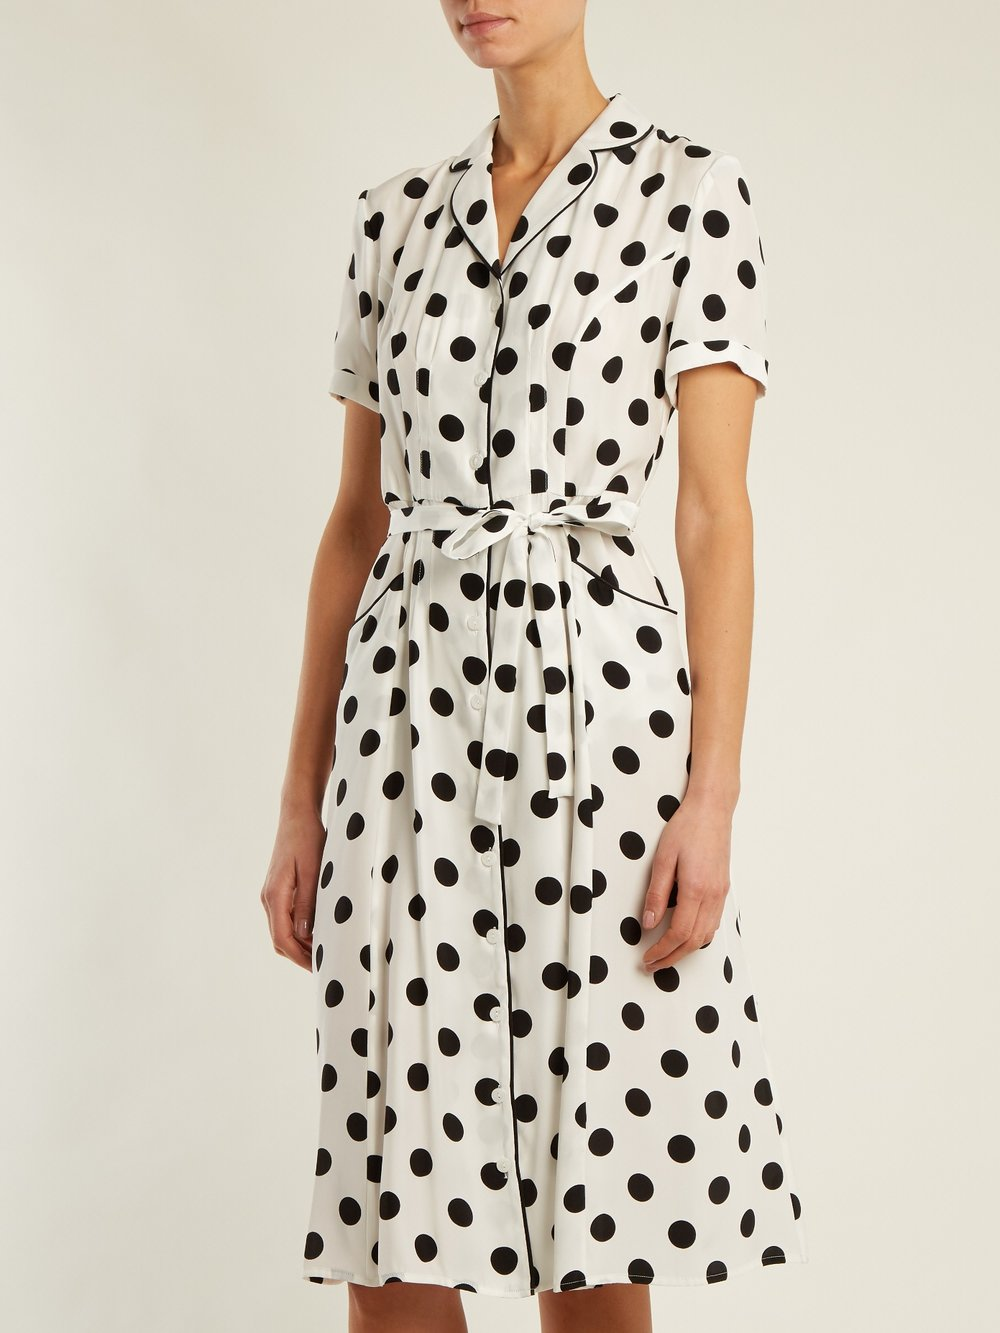 LARGE BLACK AND WHITE POLKA DOT - SHOP NOW